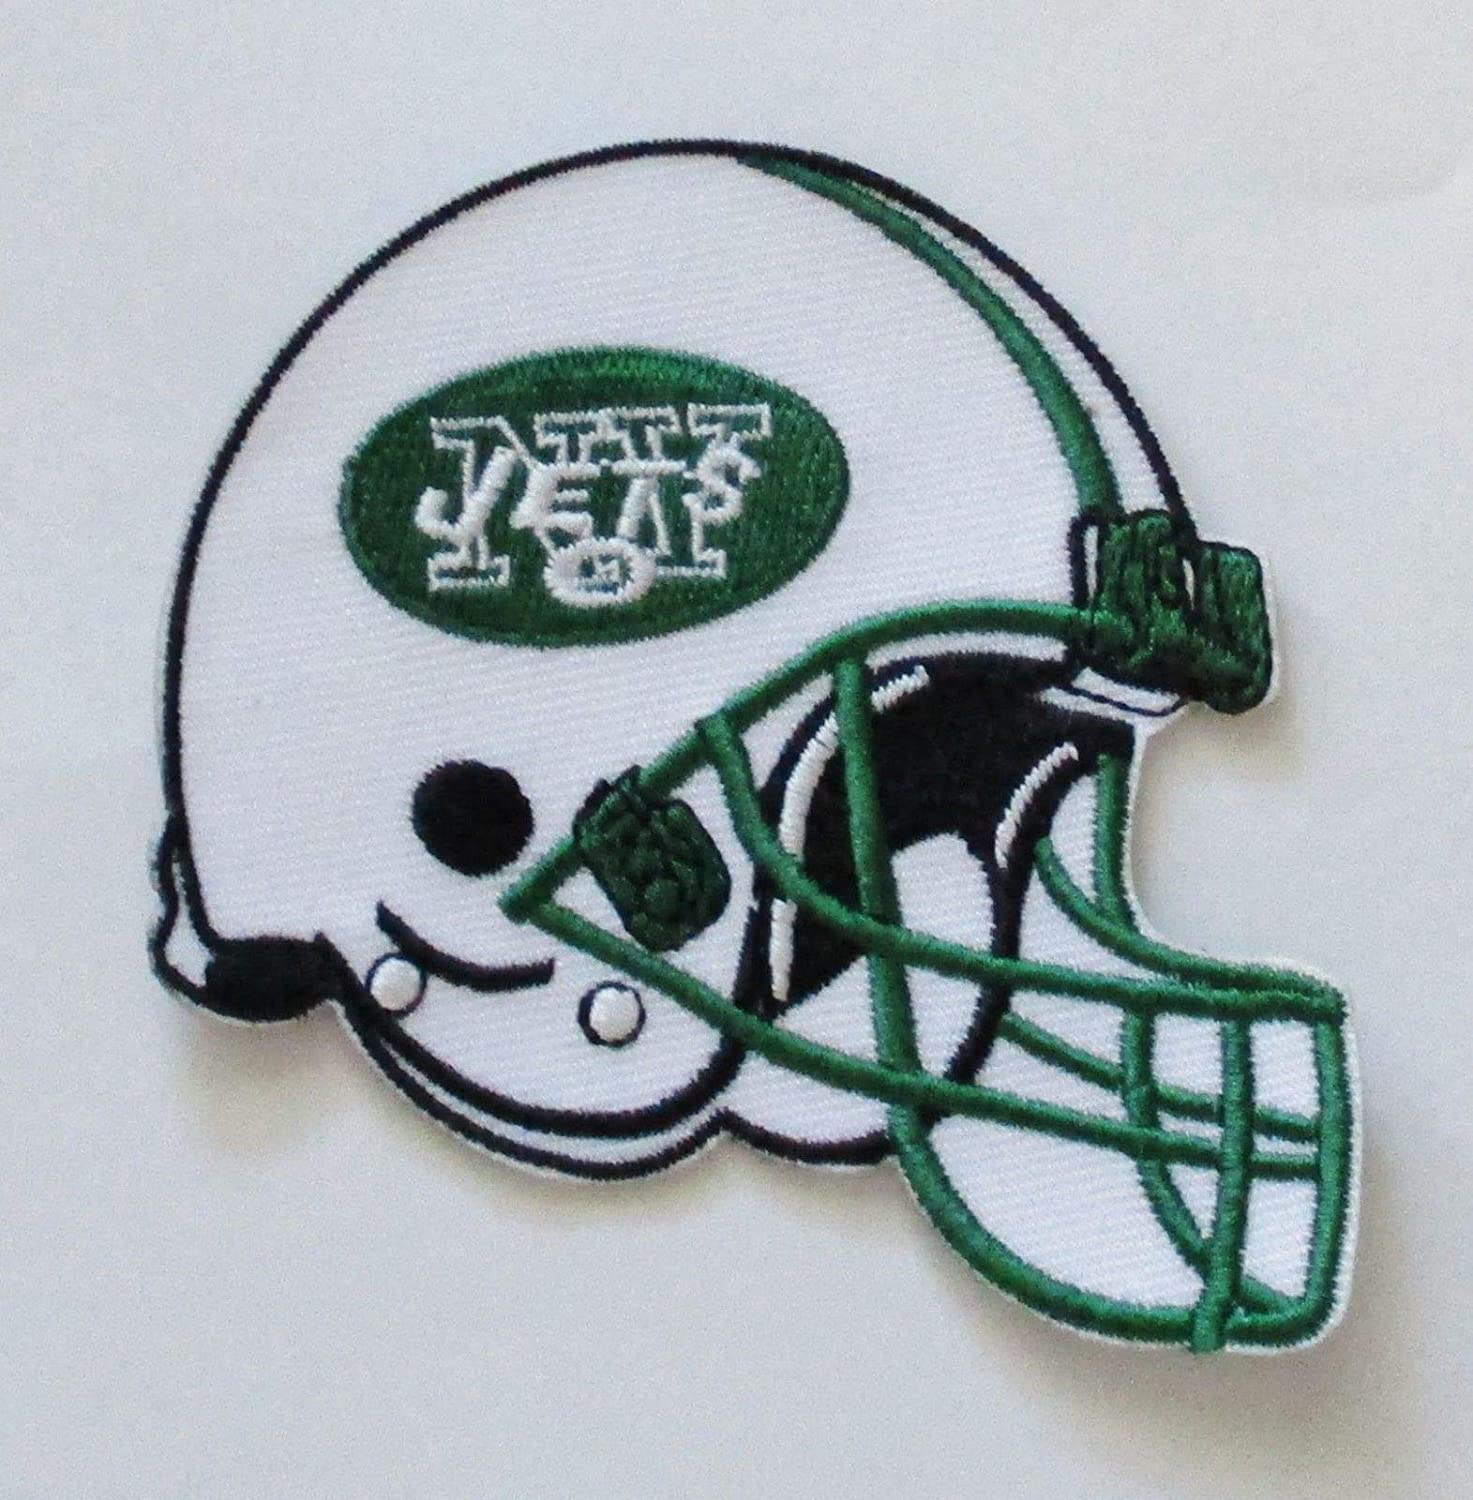 New York Jets NY Embroidered Iron On Patch.